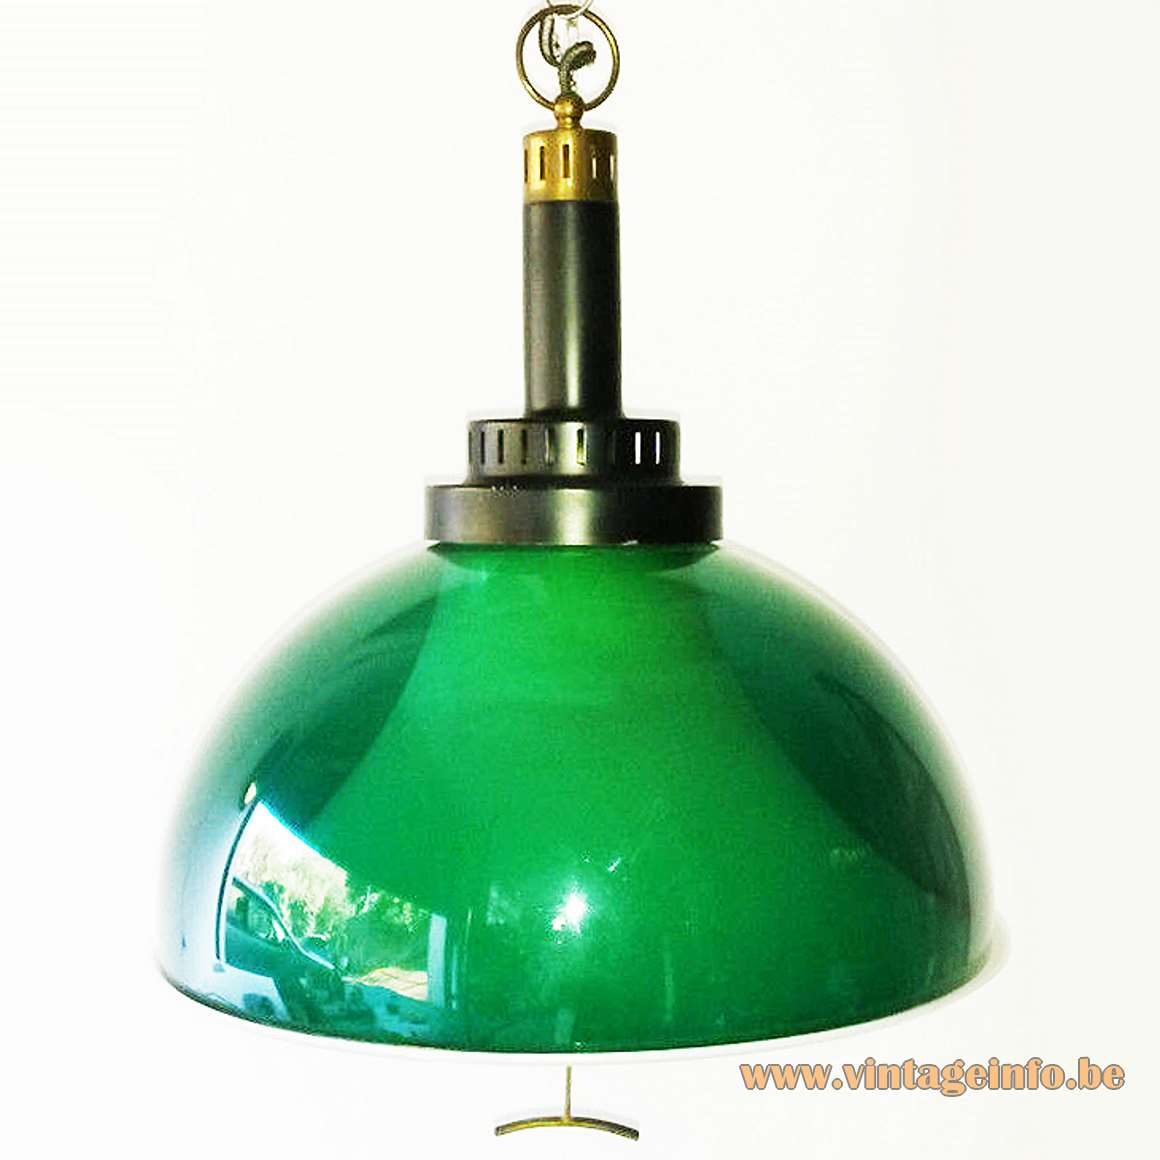 Green clear acrylic rise & fall pendant lamp chrome handle Stilux 1960s 1970s Mid-Century Modern MCM white diffuser